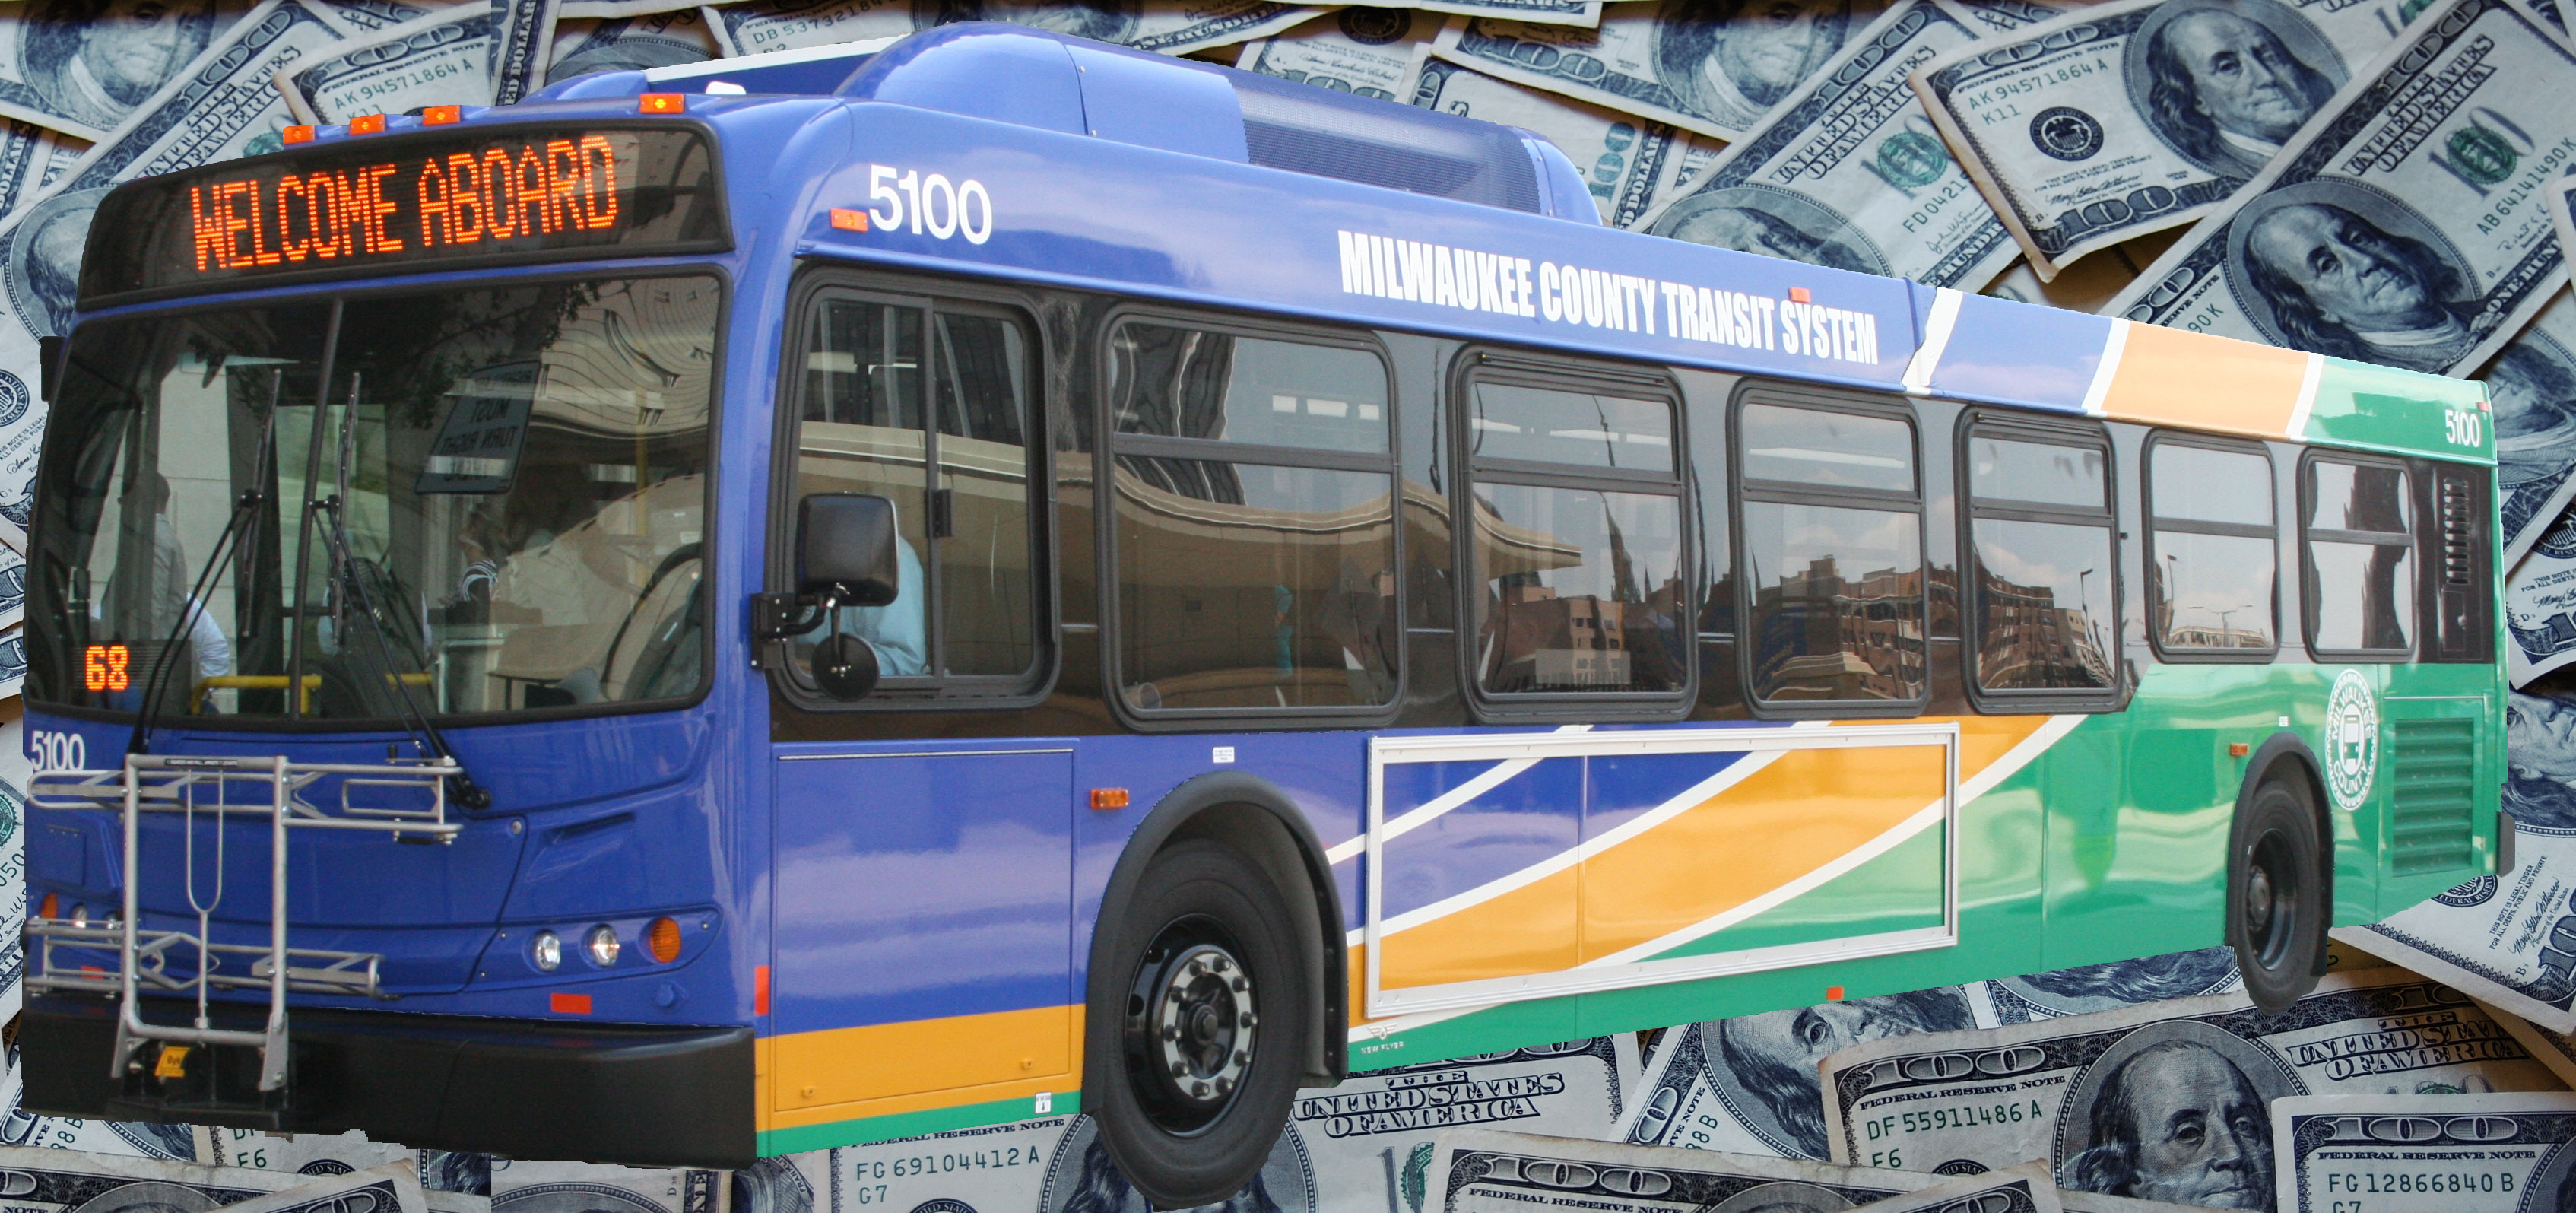 eyes on milwaukee: 15 myths about the bus strike (and more) » urban